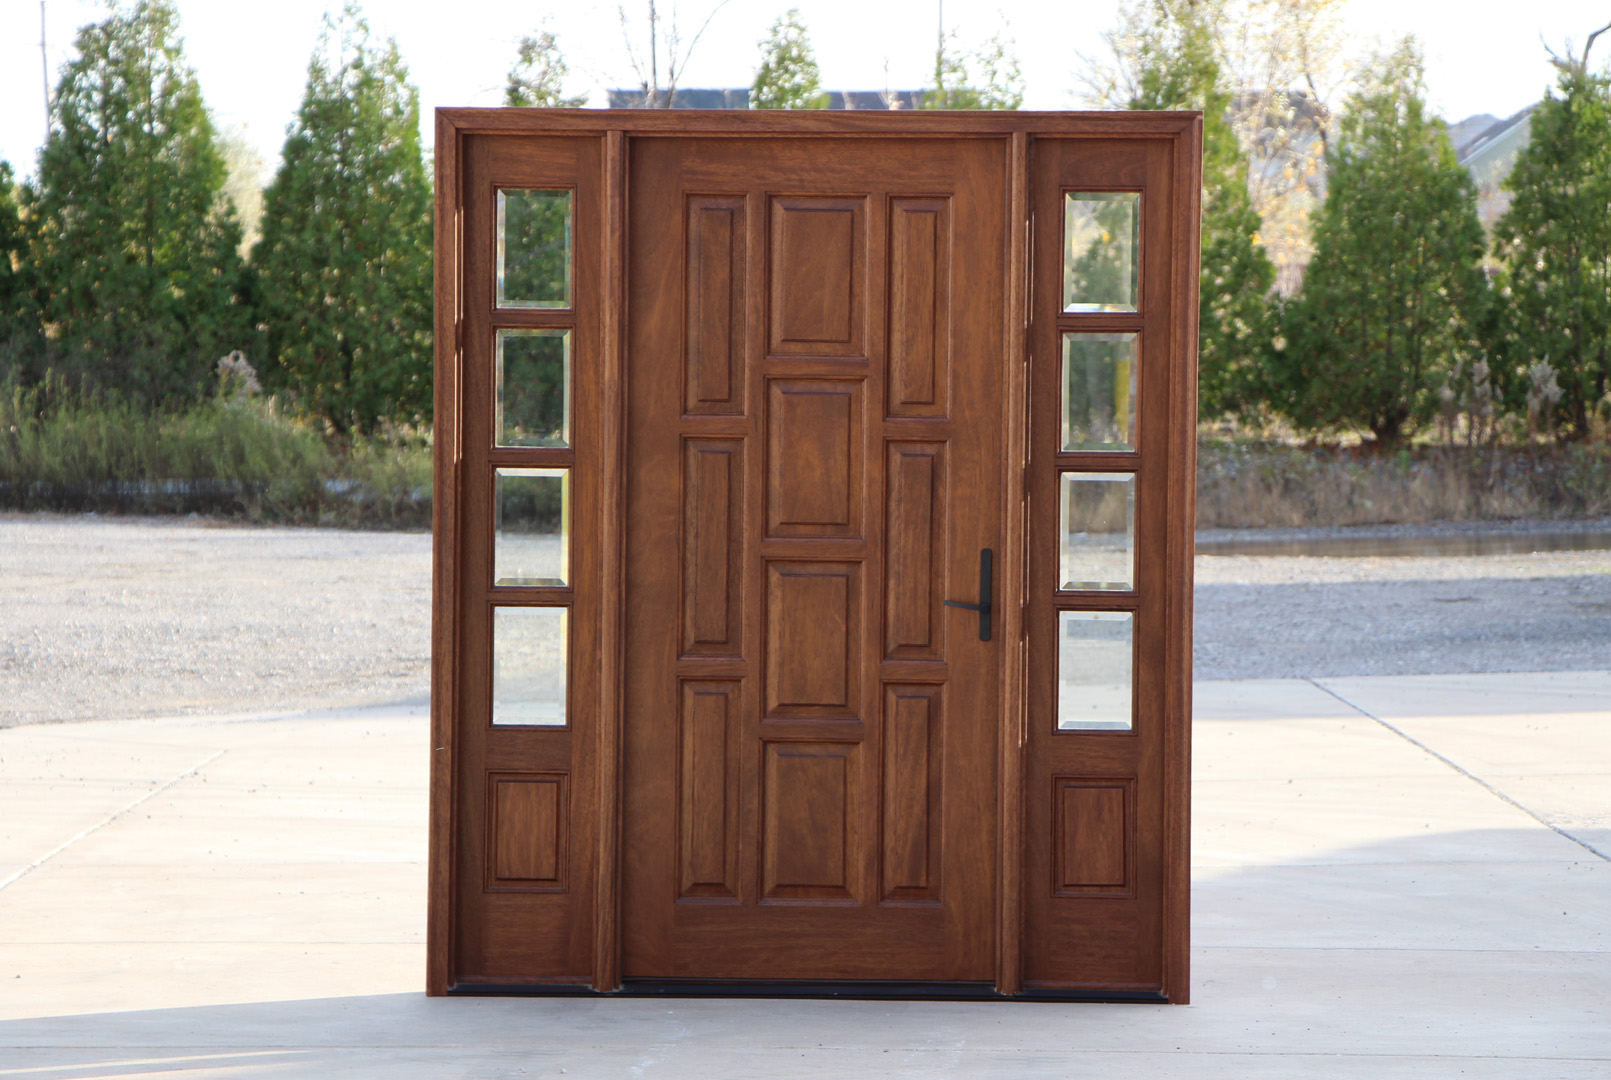 Exterior Doors With Sidelights CombinationsSidelights and